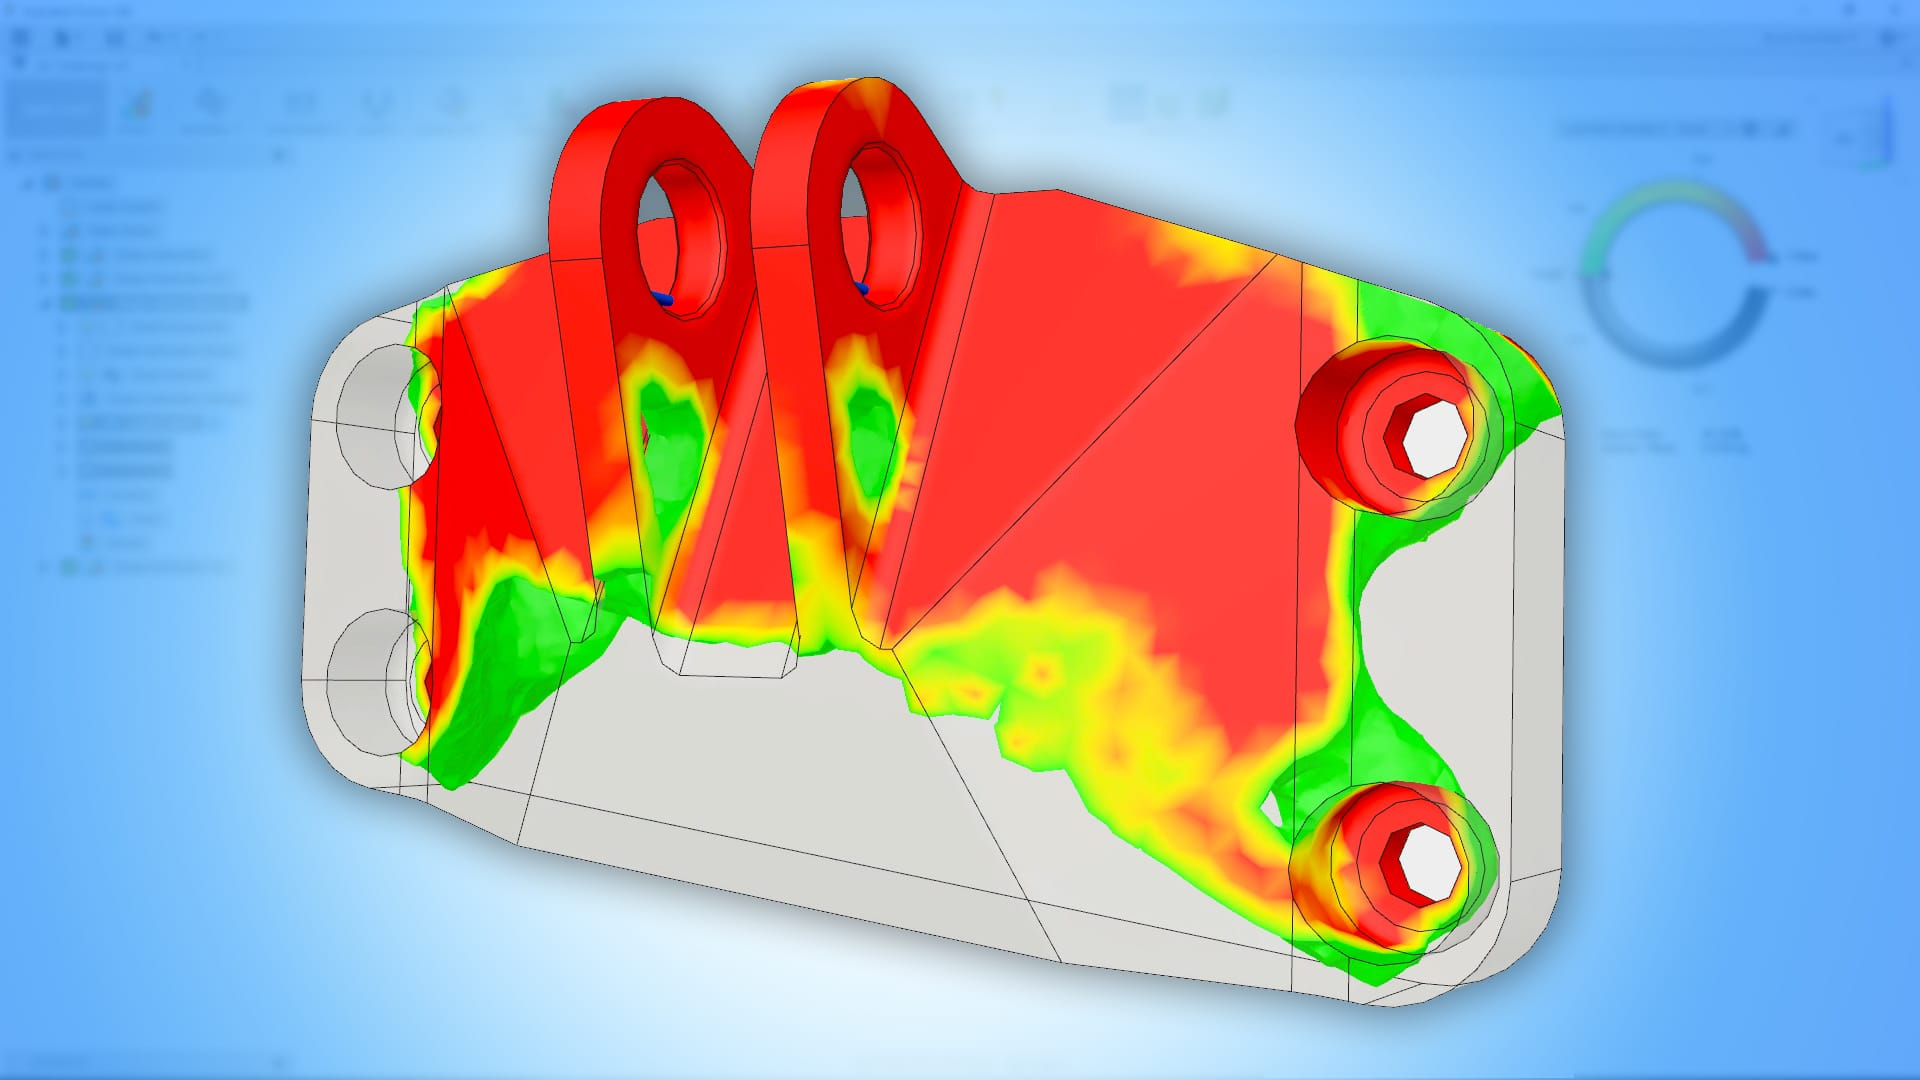 3 Features That Make Fusion 360 a Powerful Engineering Tool